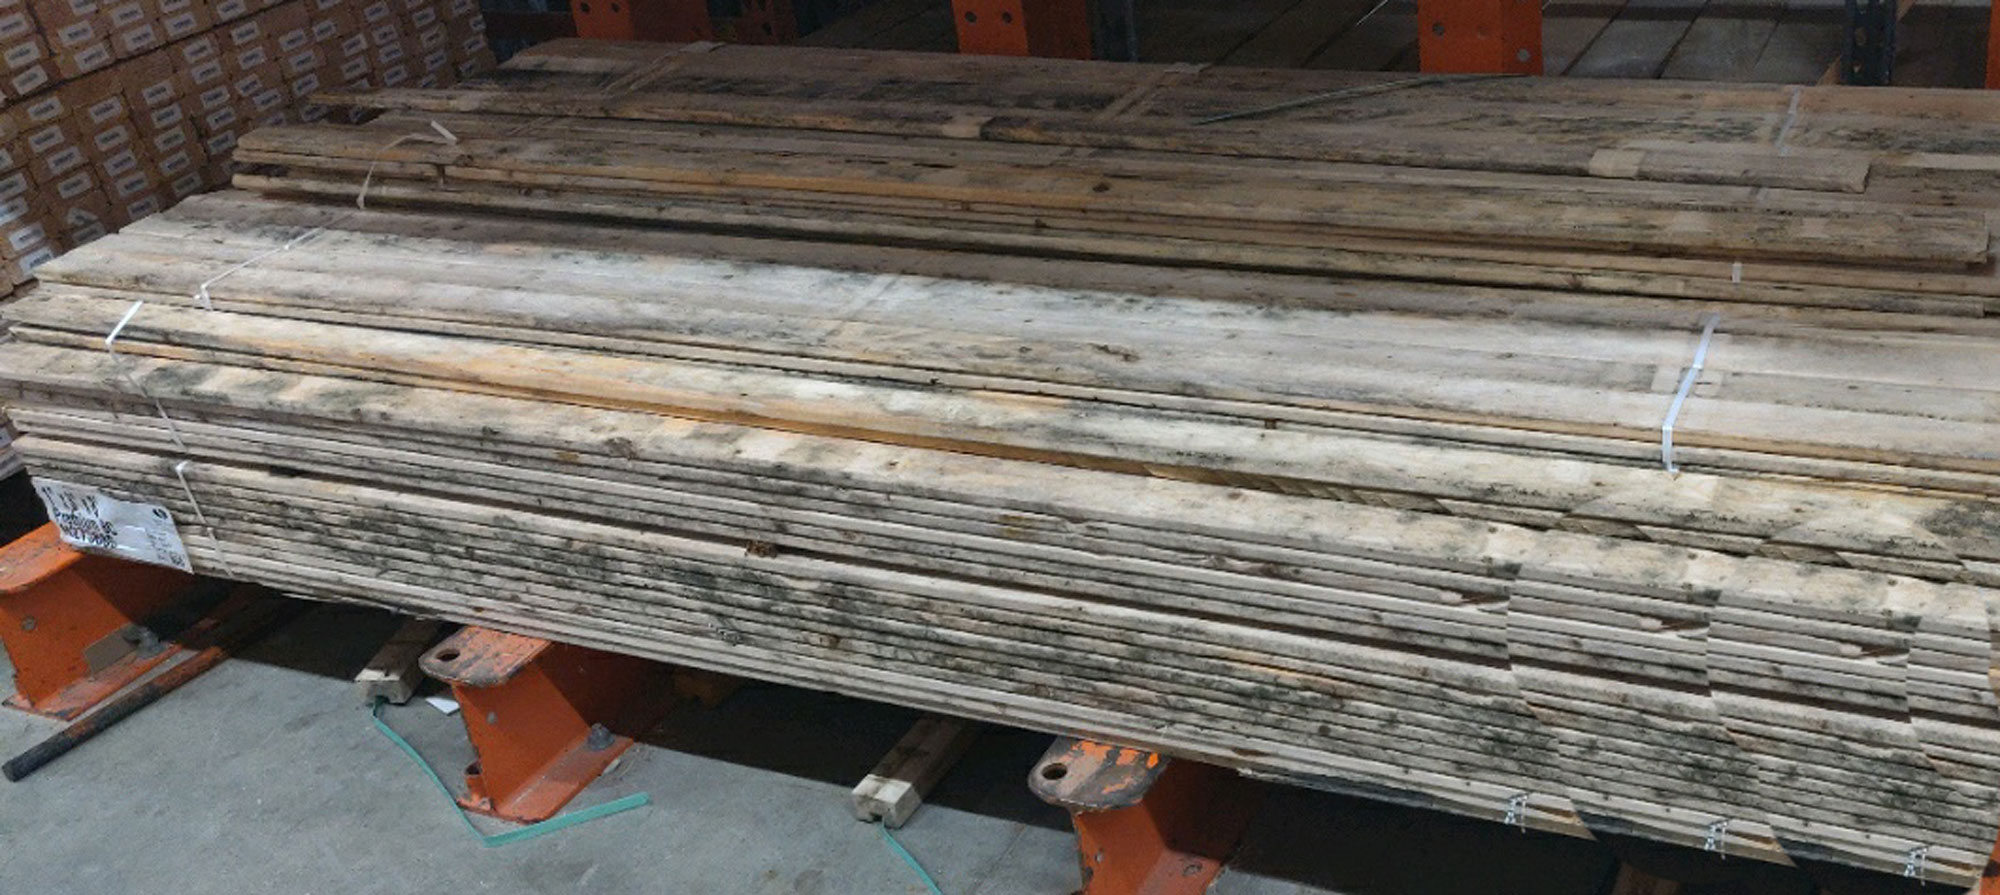 avoid moldy building materials at hardware stores